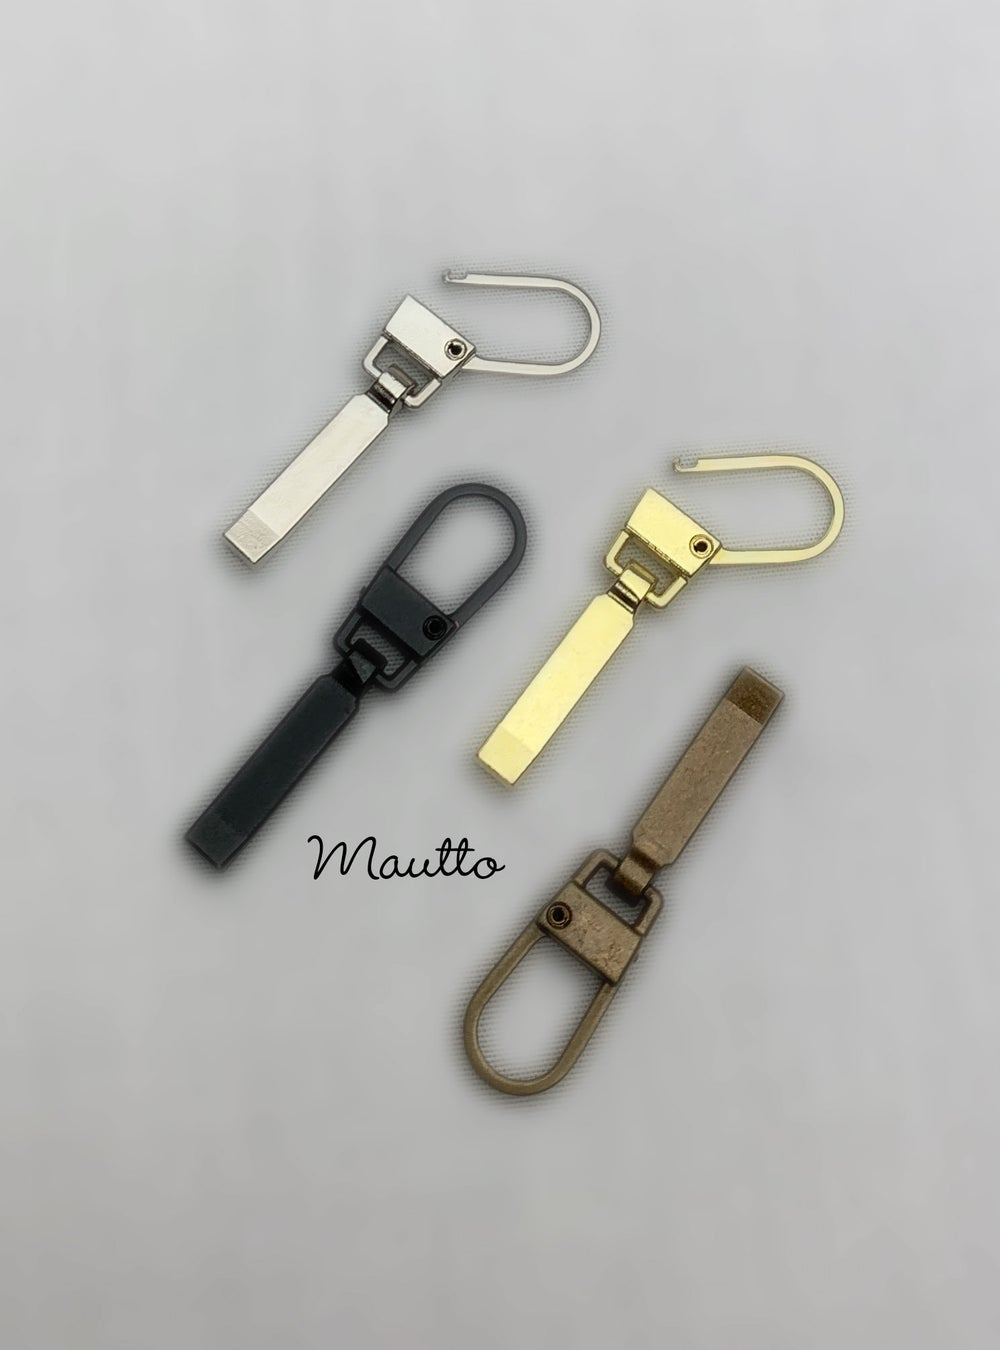 Image of Attachable Replacement Zipper Pulls - Gold, Nickel, Antique Brass, and Black finishes